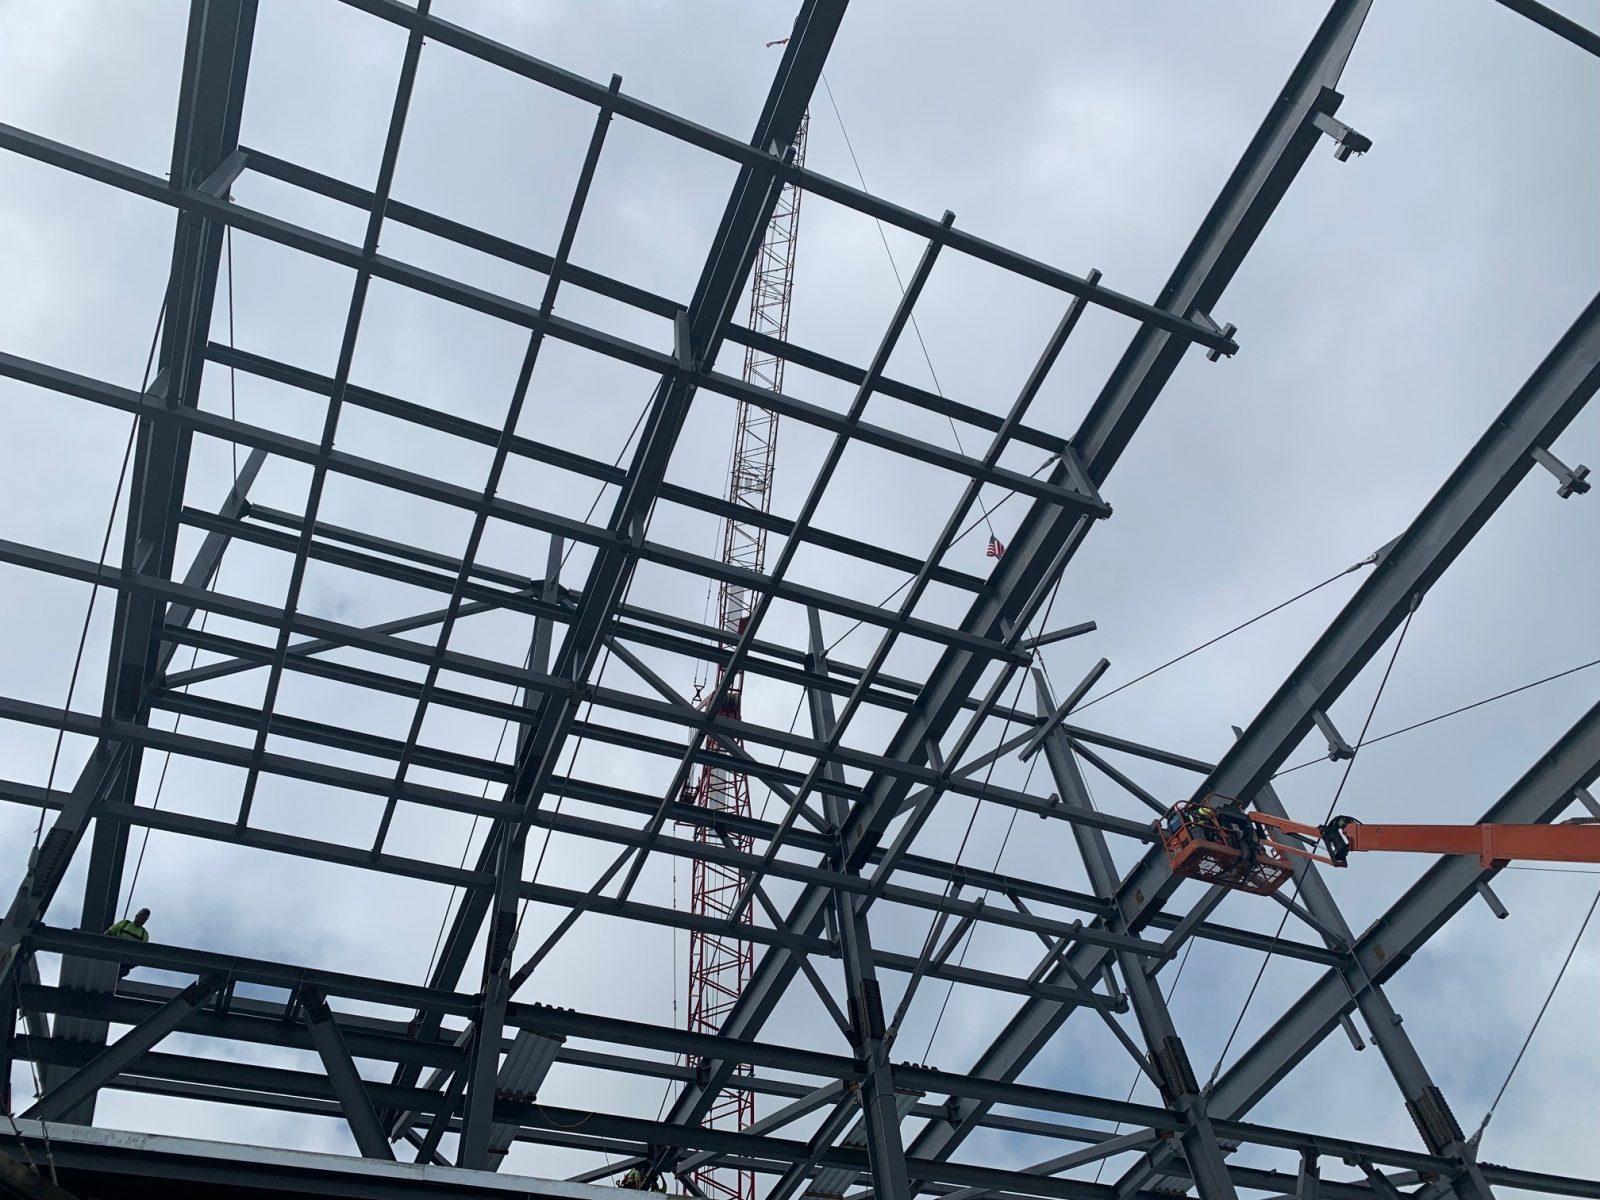 SkyDeck Canopy during construction. Photo courtesy of Choate Construction.